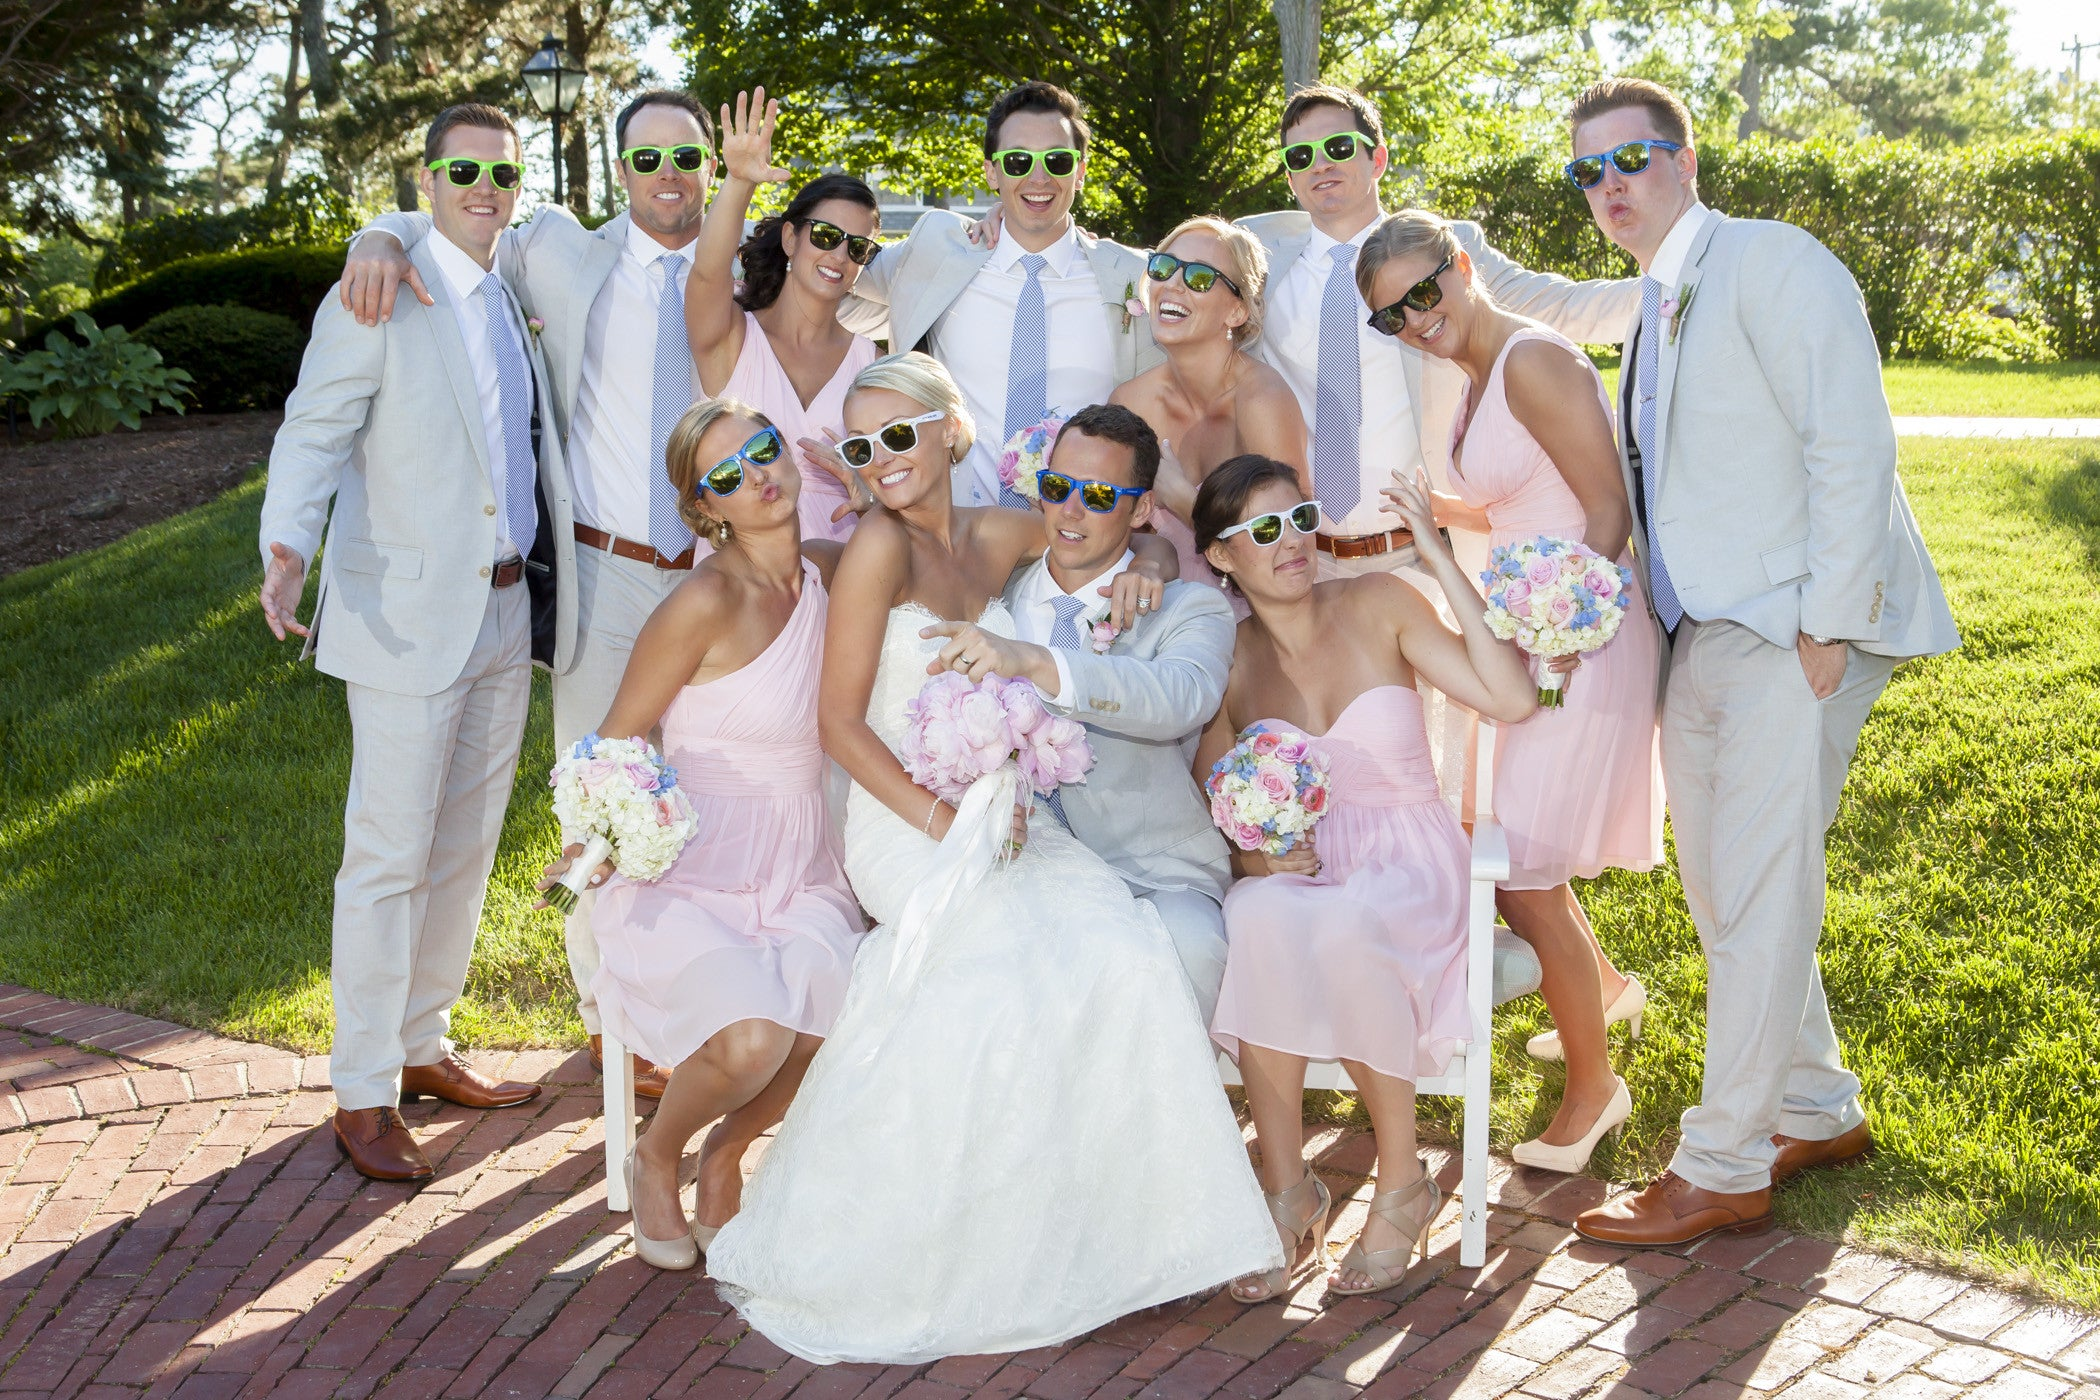 5 Things to Consider When Choosing Your Bridal Party